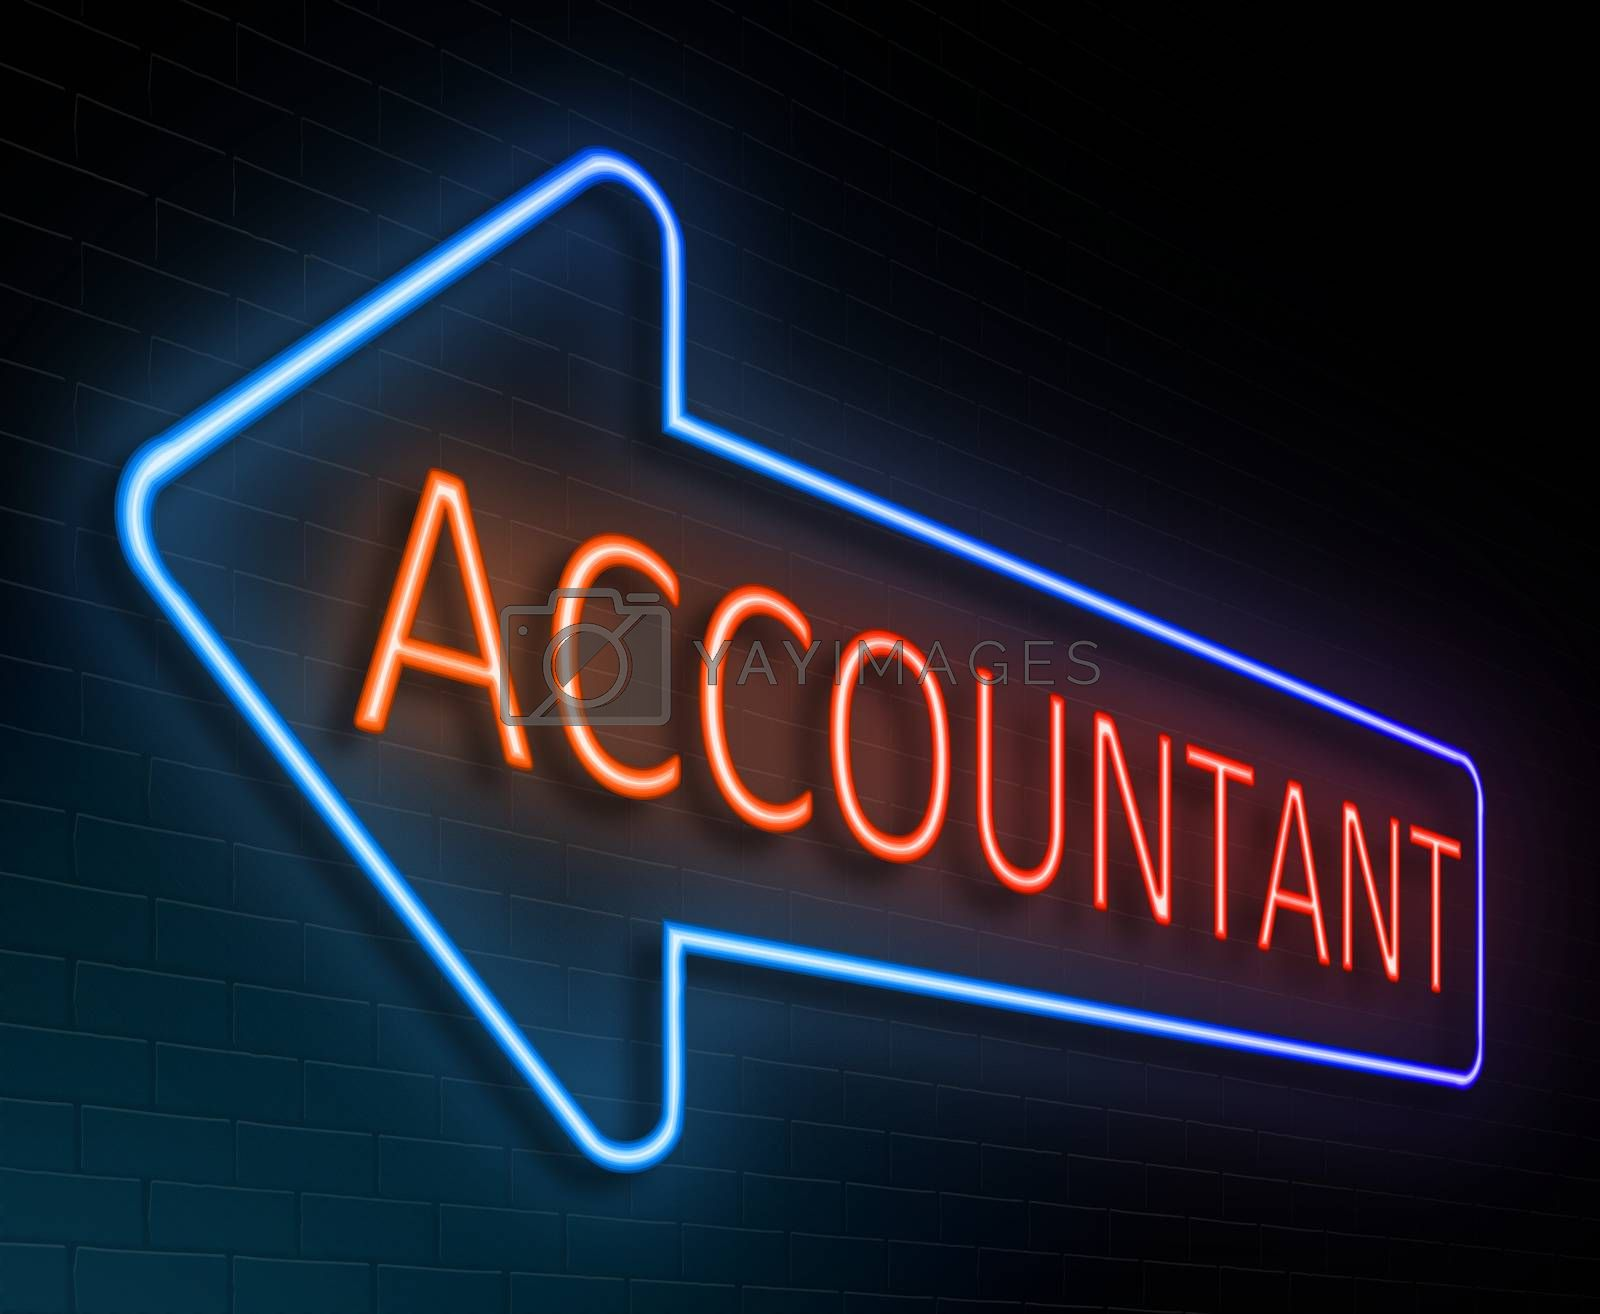 Illustration depicting an illuminated neon sign with an accountant concept.